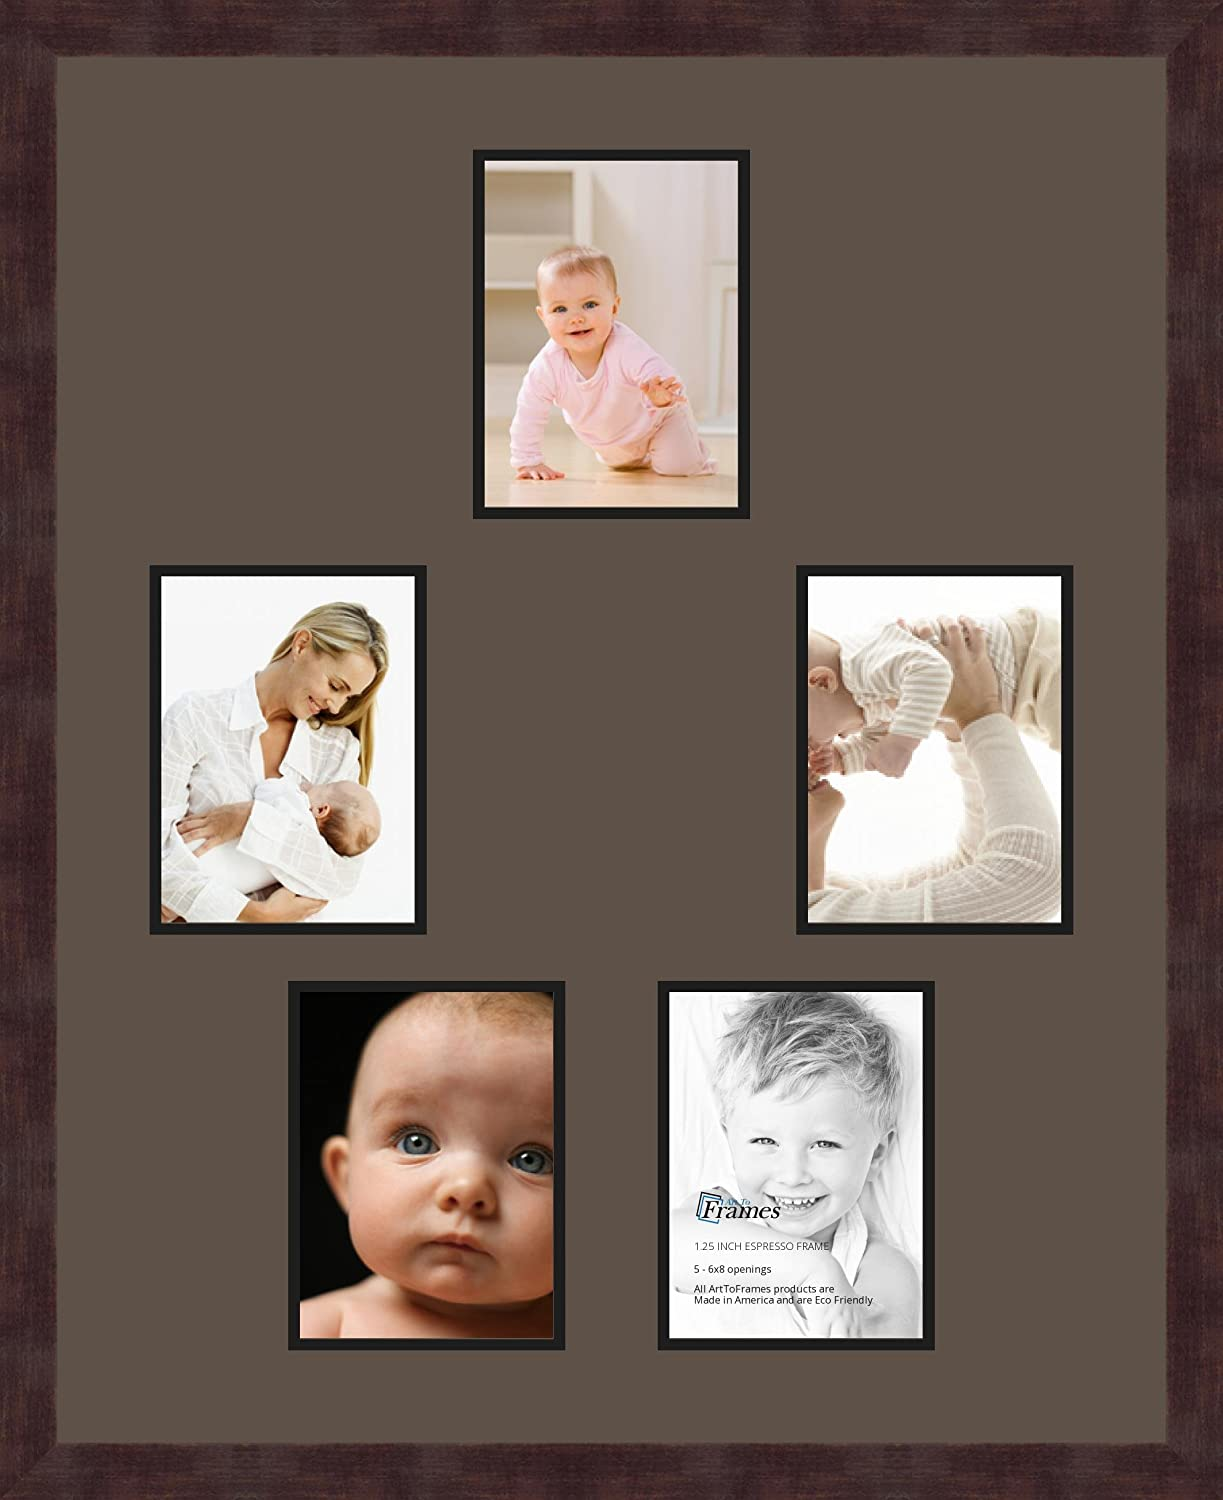 Art to Frames Double-Multimat-984-119//89-FRBW26061 Collage Frame Photo Mat Double Mat with 5-6x8 Openings and Espresso Frame